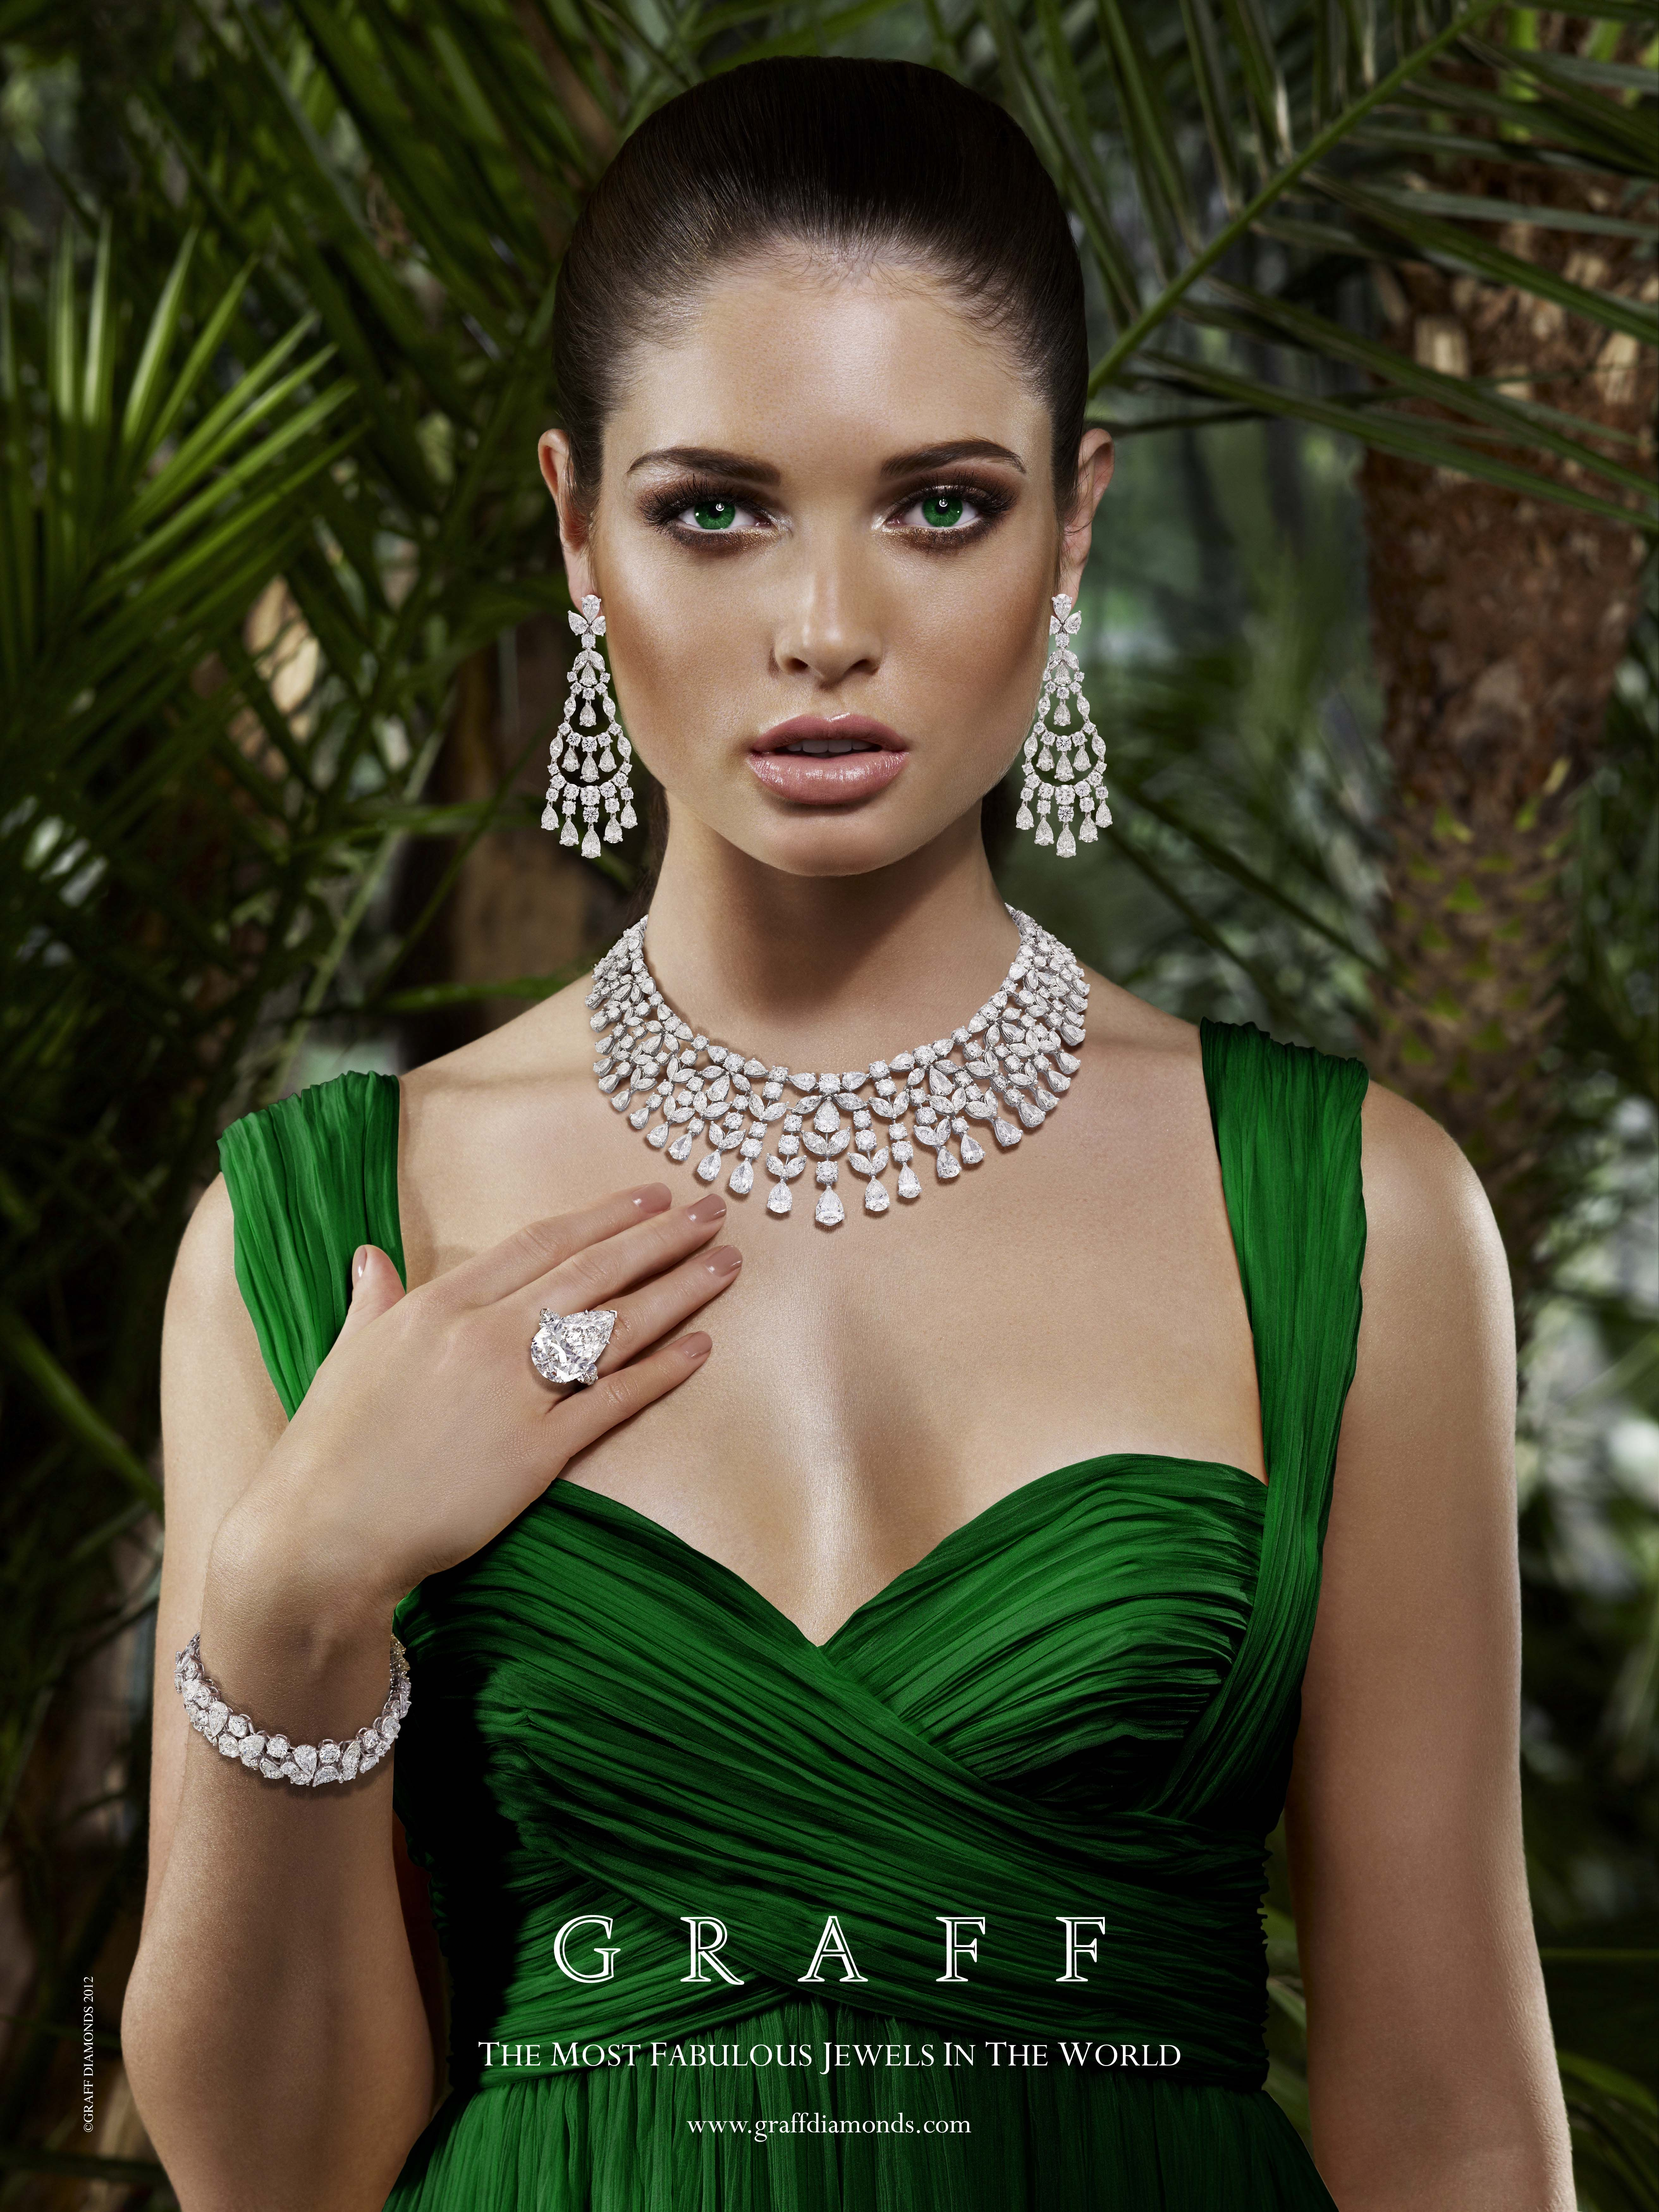 Top 10 Most Luxurious Jewelry Brands Part 2 Clearly